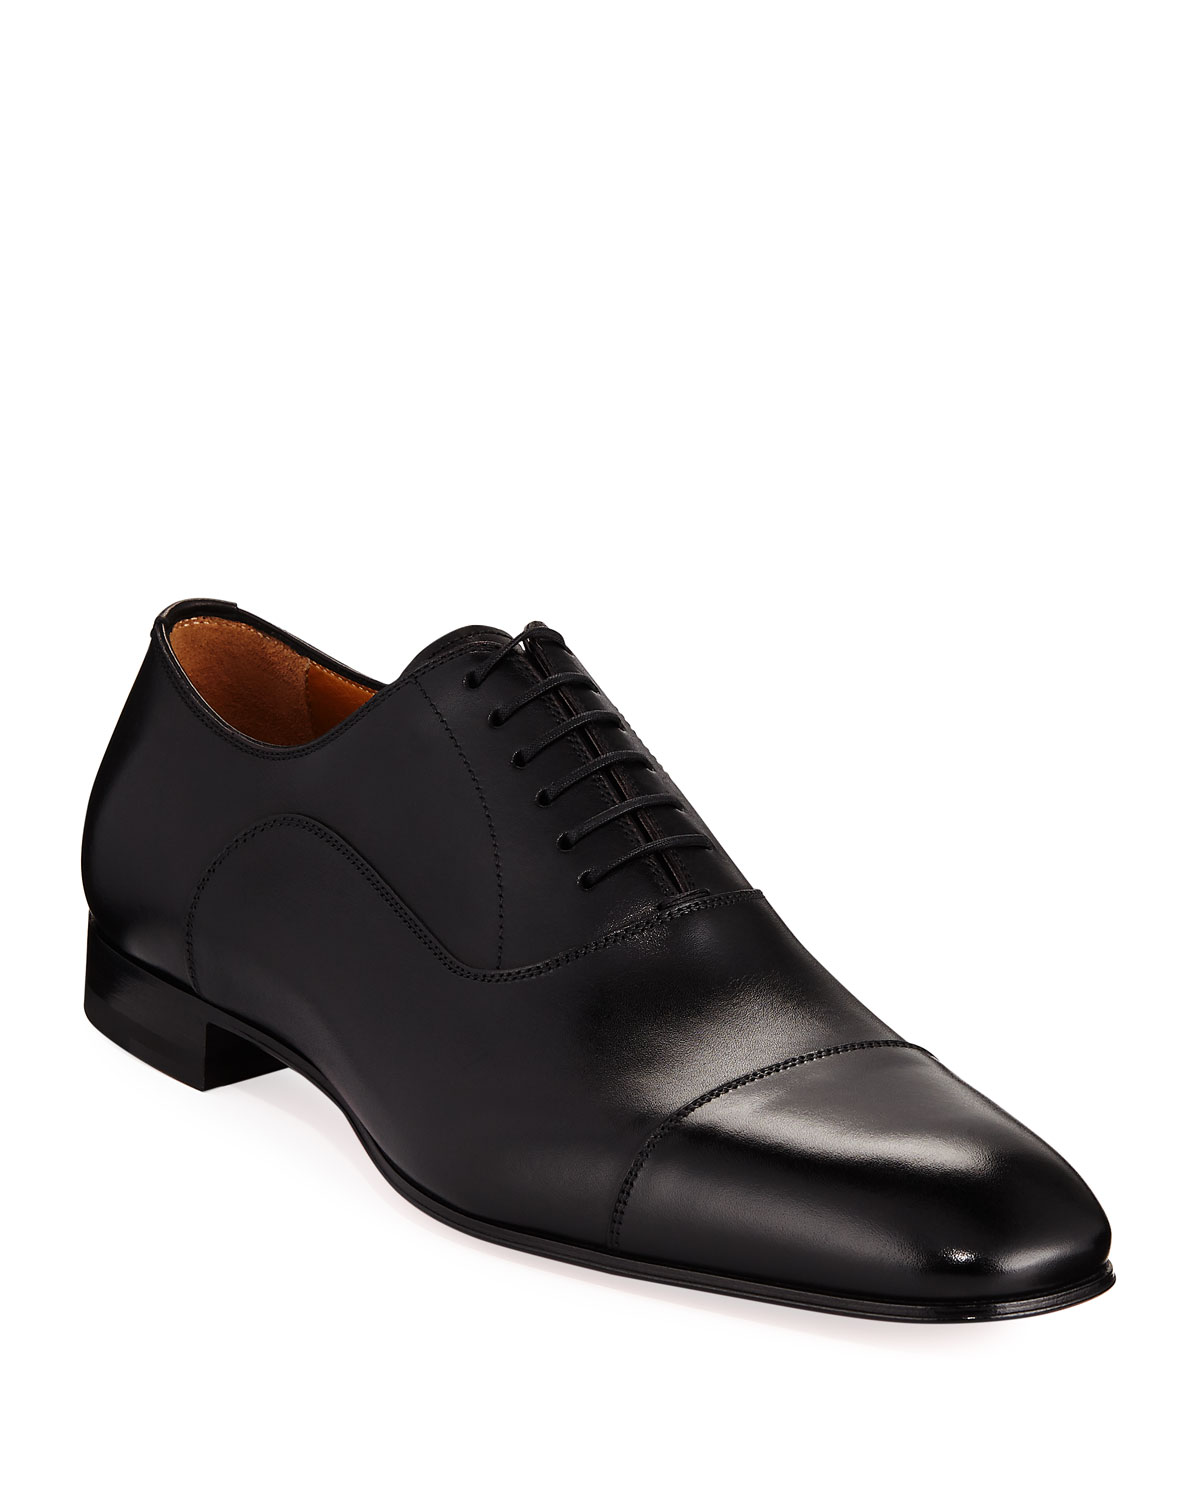 Greggo Men's Lace Up Leather Dress Shoes by Christian Louboutin